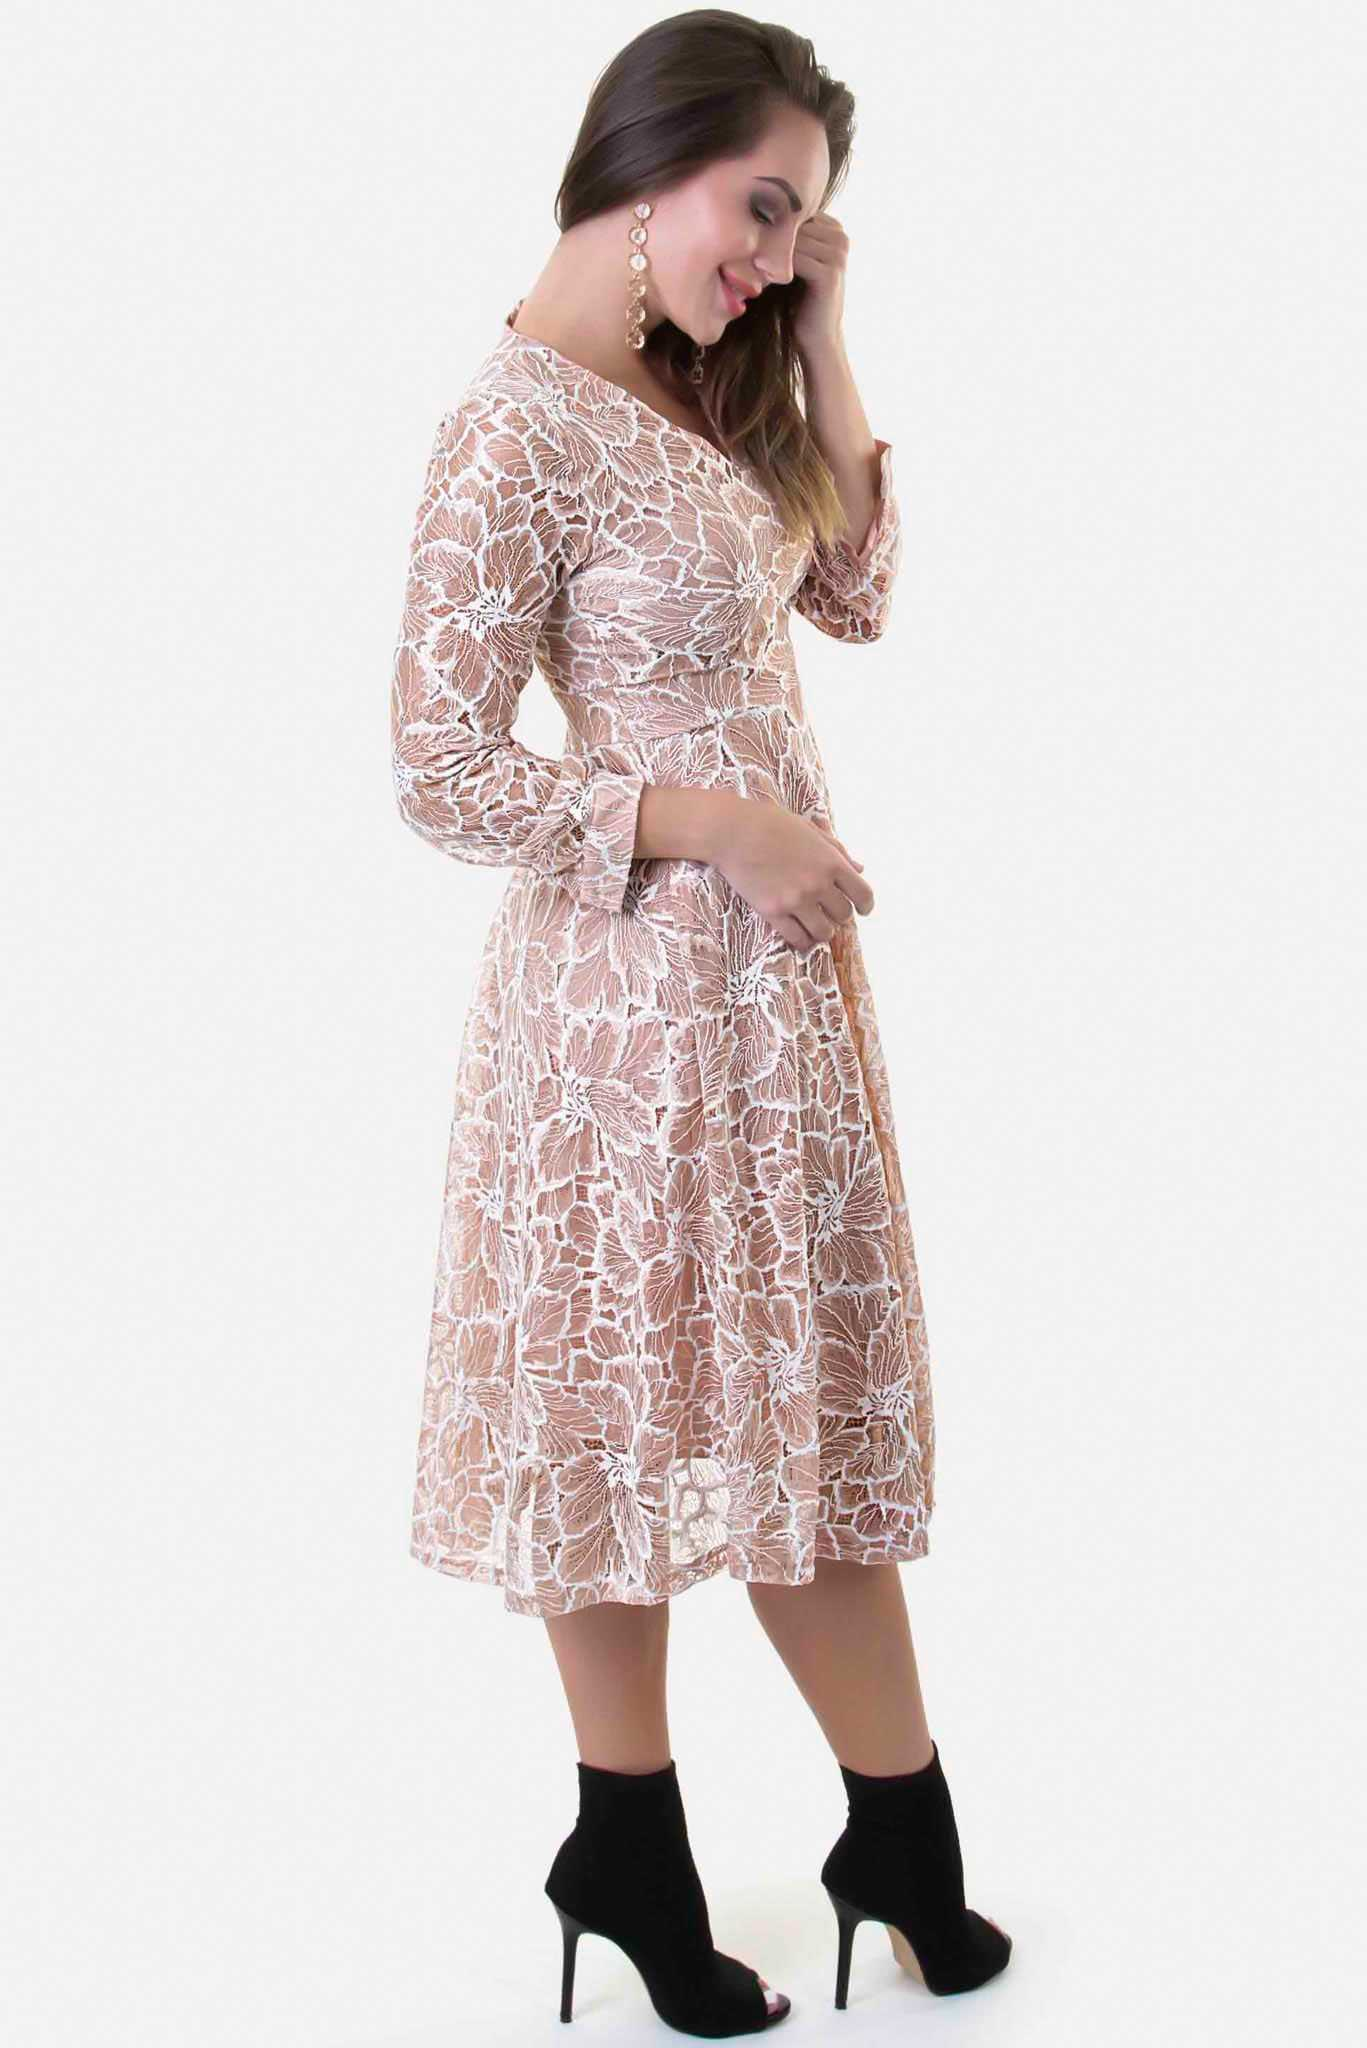 Scallop Dress - White Lace | Raw Orange